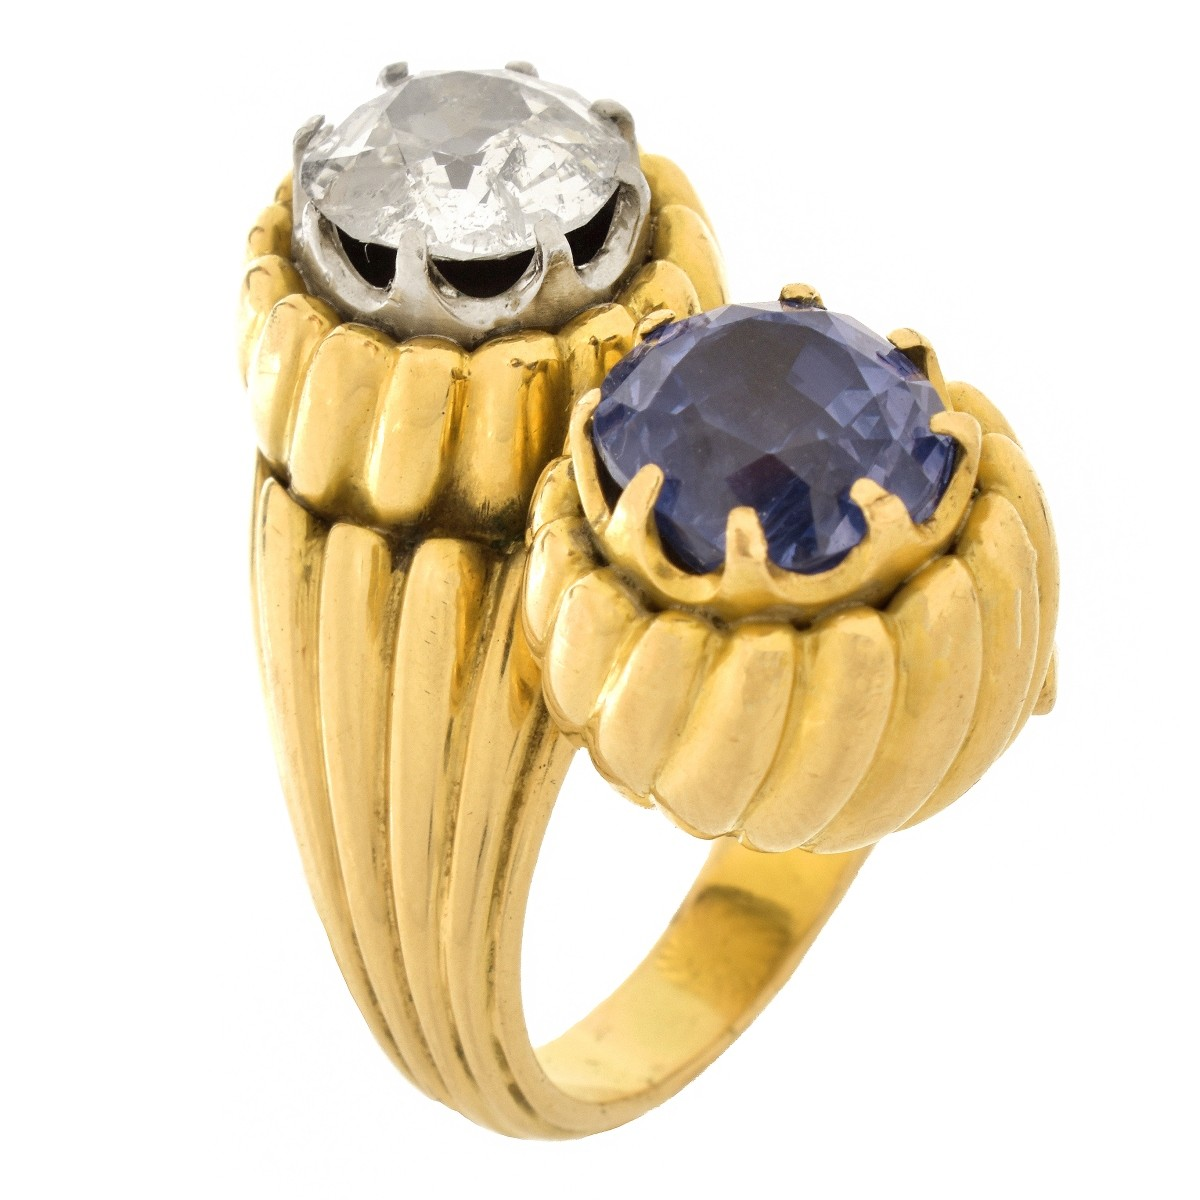 Vintage Diamond, Sapphire and 18K Ring